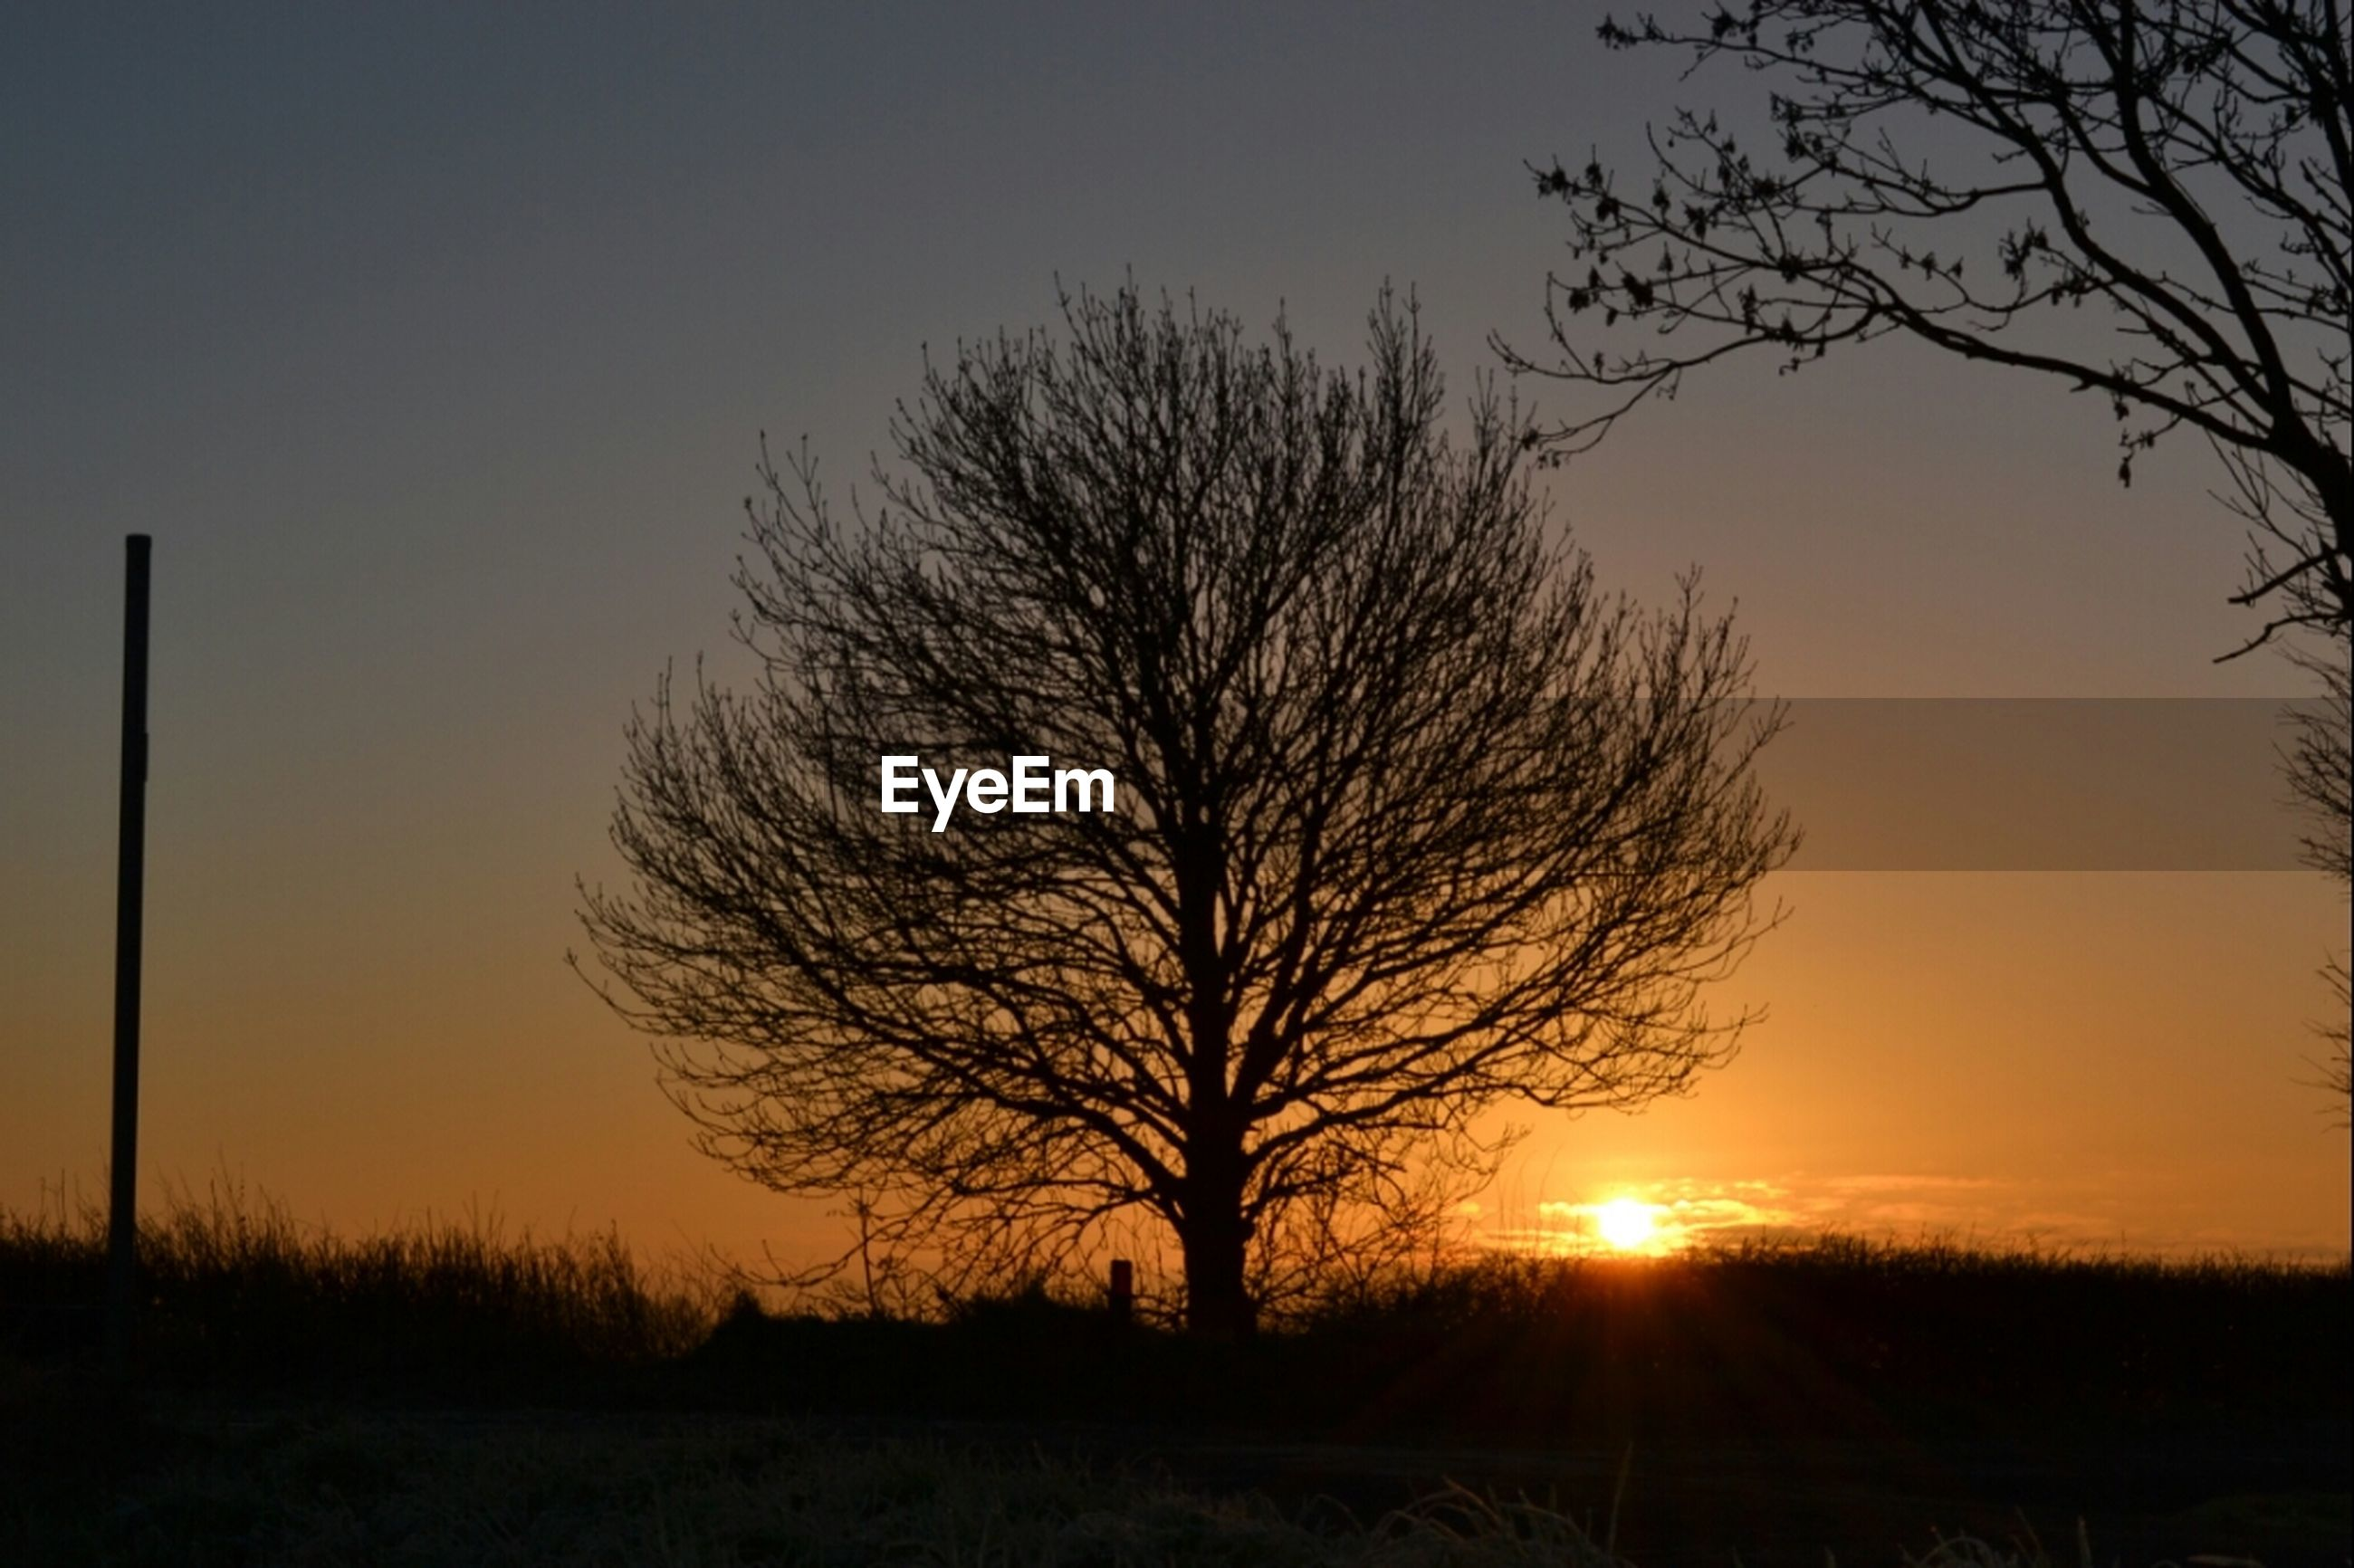 sunset, bare tree, silhouette, sun, tranquil scene, tranquility, scenics, tree, beauty in nature, landscape, orange color, branch, nature, sky, idyllic, field, sunlight, clear sky, outdoors, back lit